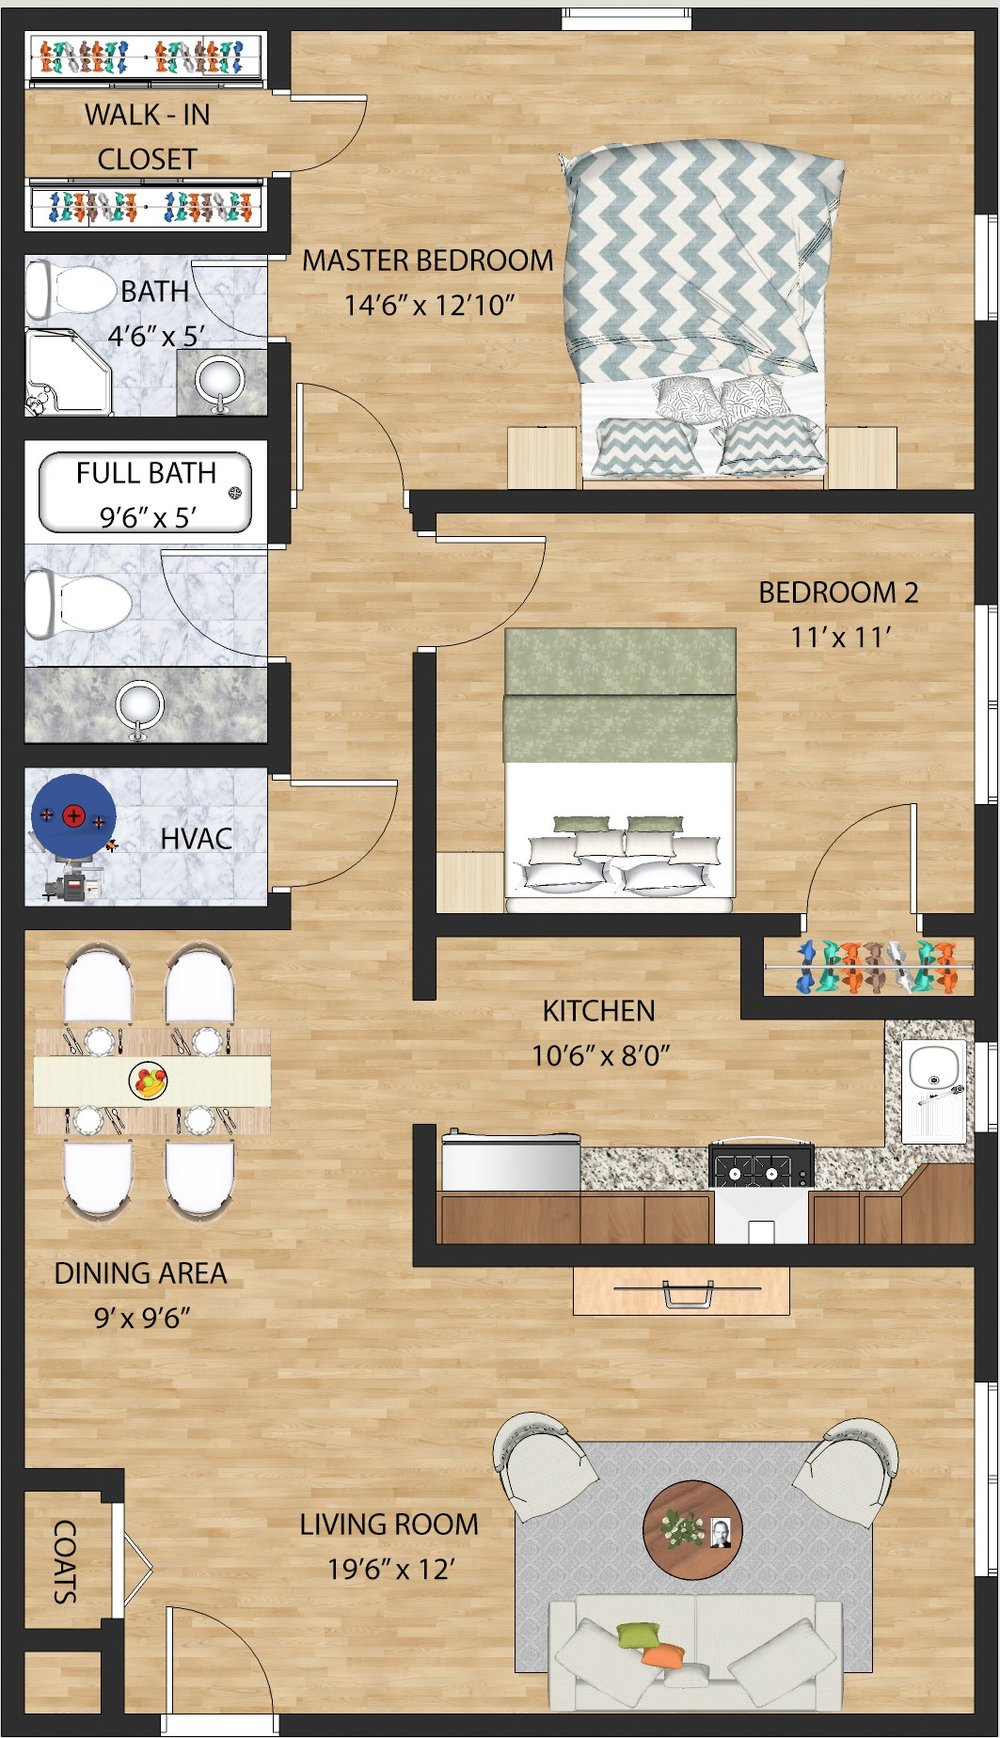 2_BR_2_Bath_Floor_Plan__Harbor.jpg